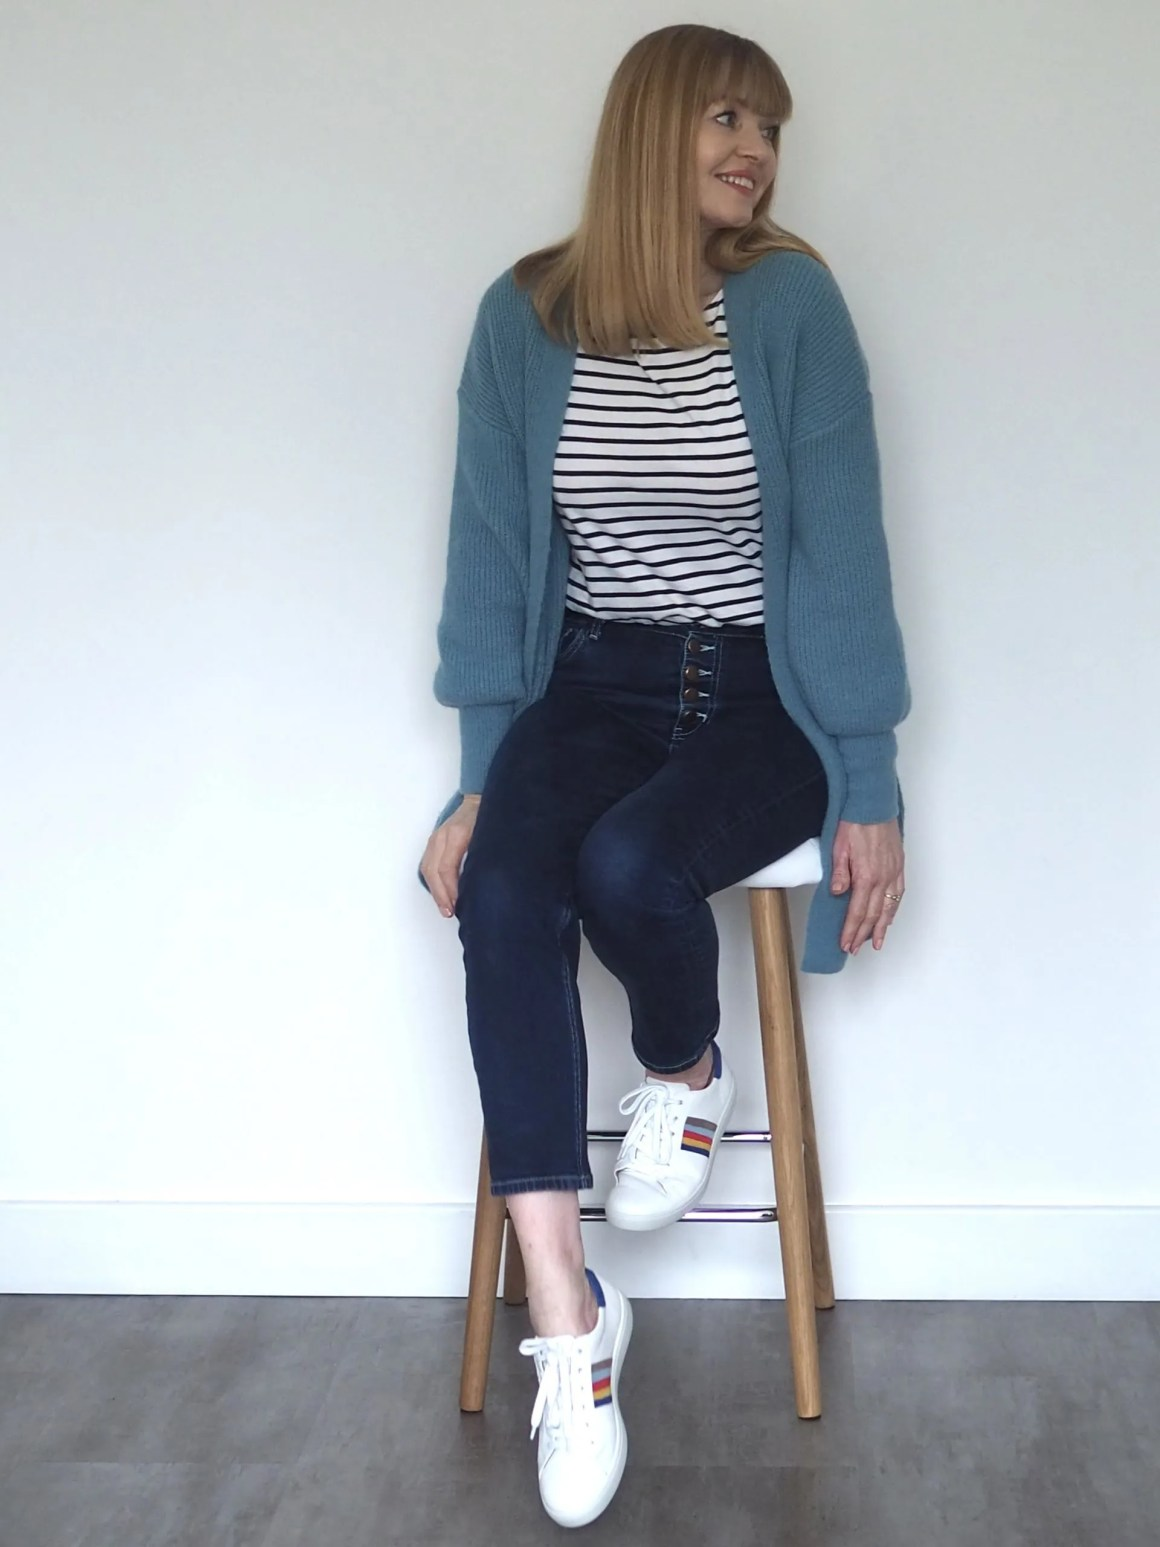 breton top and jeans